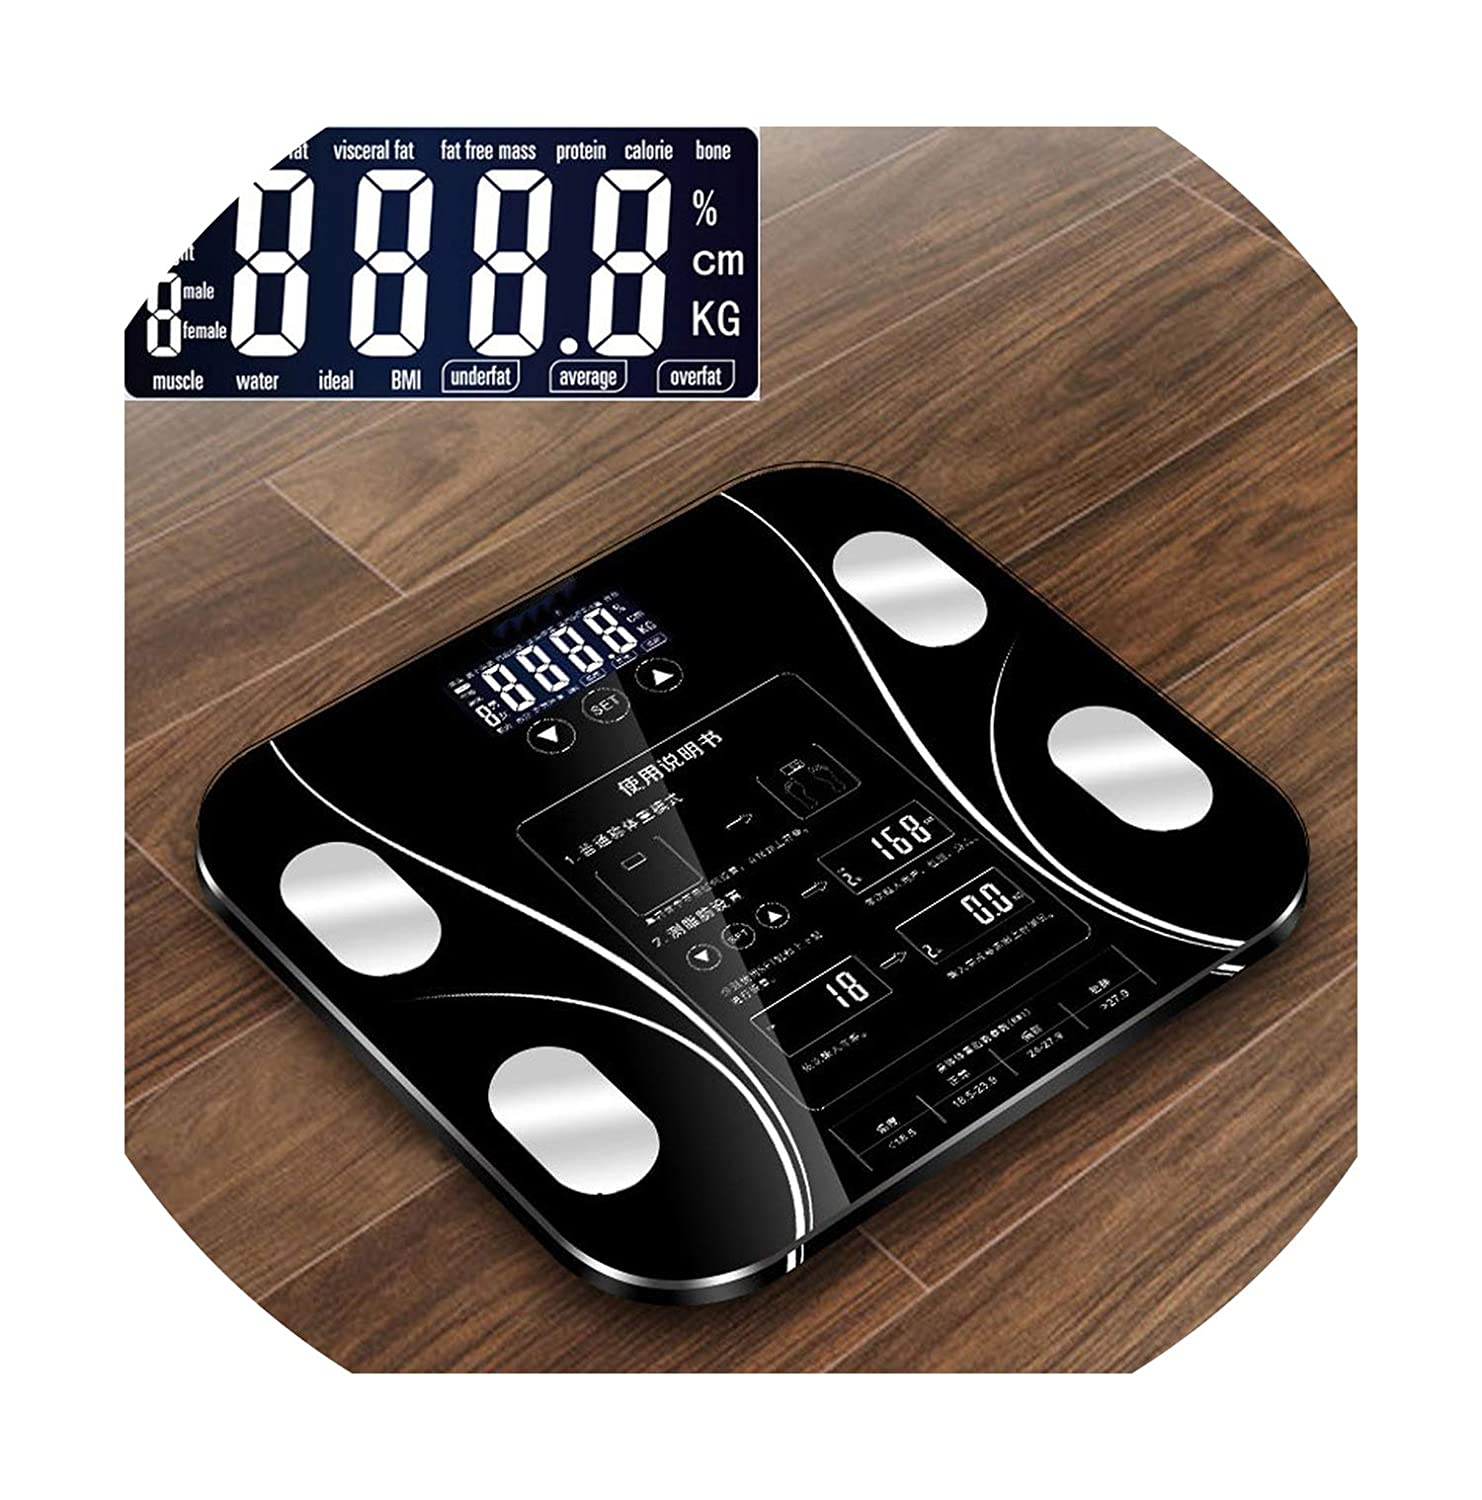 ... Button Bathroom Weight Scale LCD Smart Body Balance Electronic Scales Clever bmi Body Fat Scale Balance de Precision,Purple: Health & Personal Care